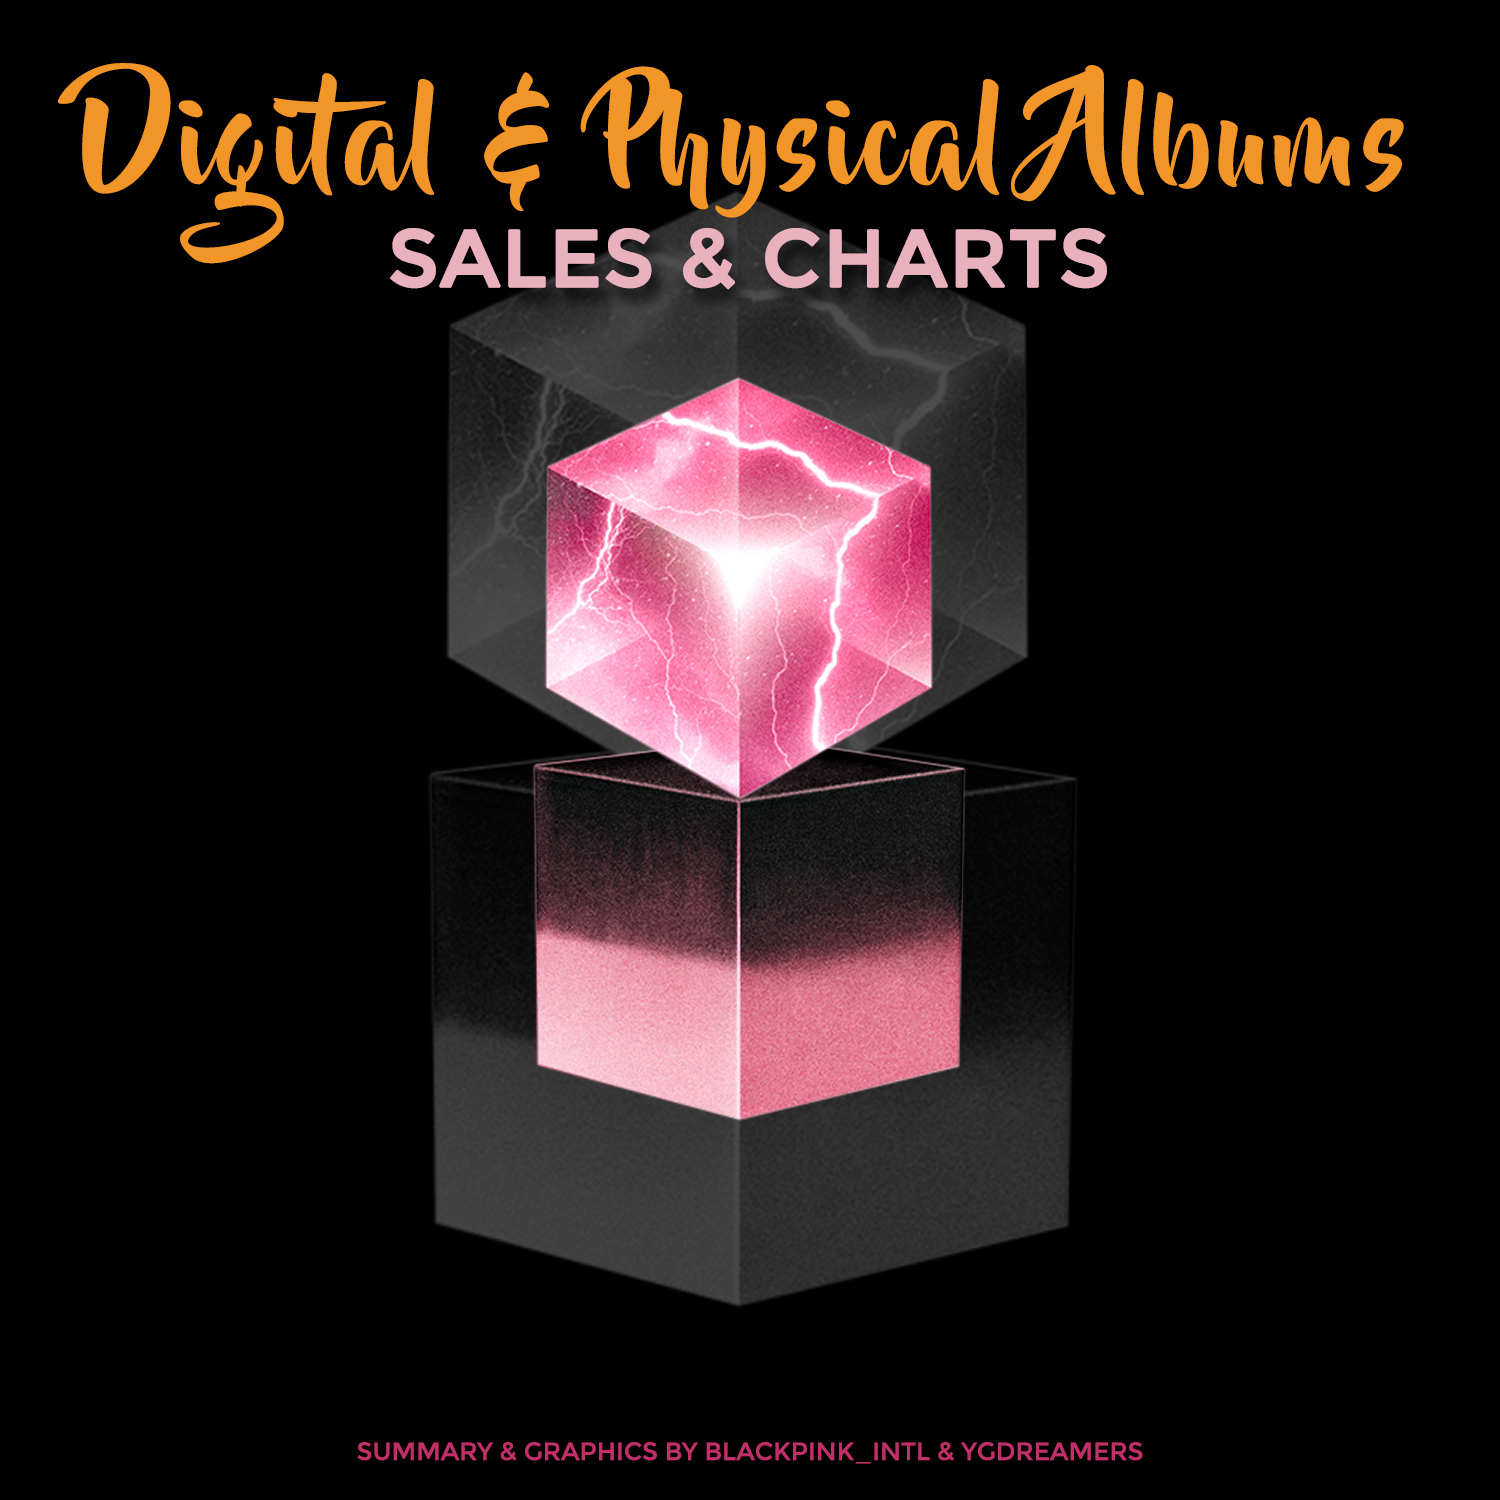 DIGITAL + PHYSICAL ALBUM SALES_CHARTS 0-2